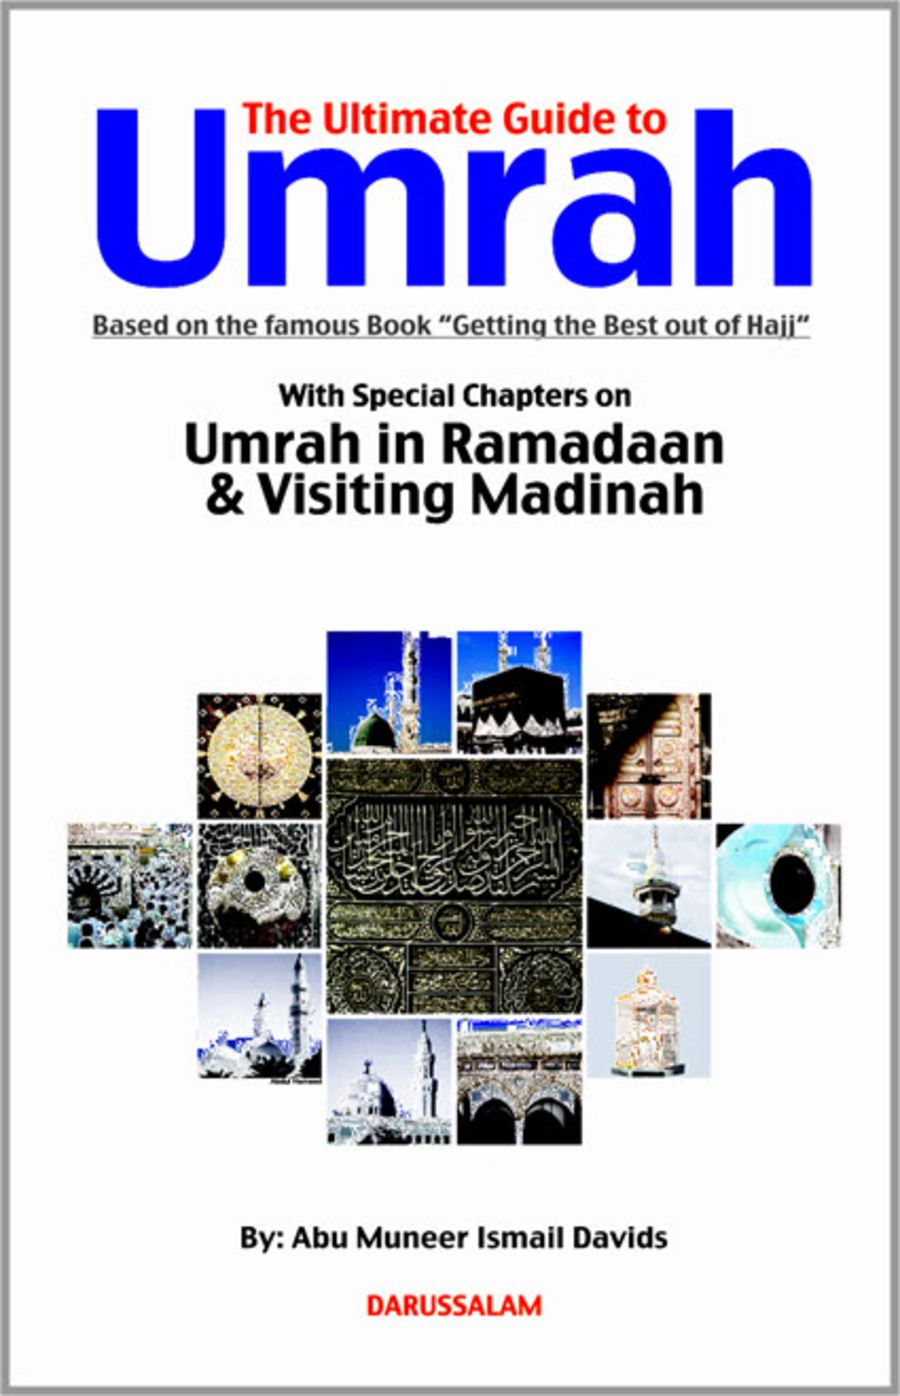 Ultimate Guide to Umrah by Abu Muneer Ismail Davids